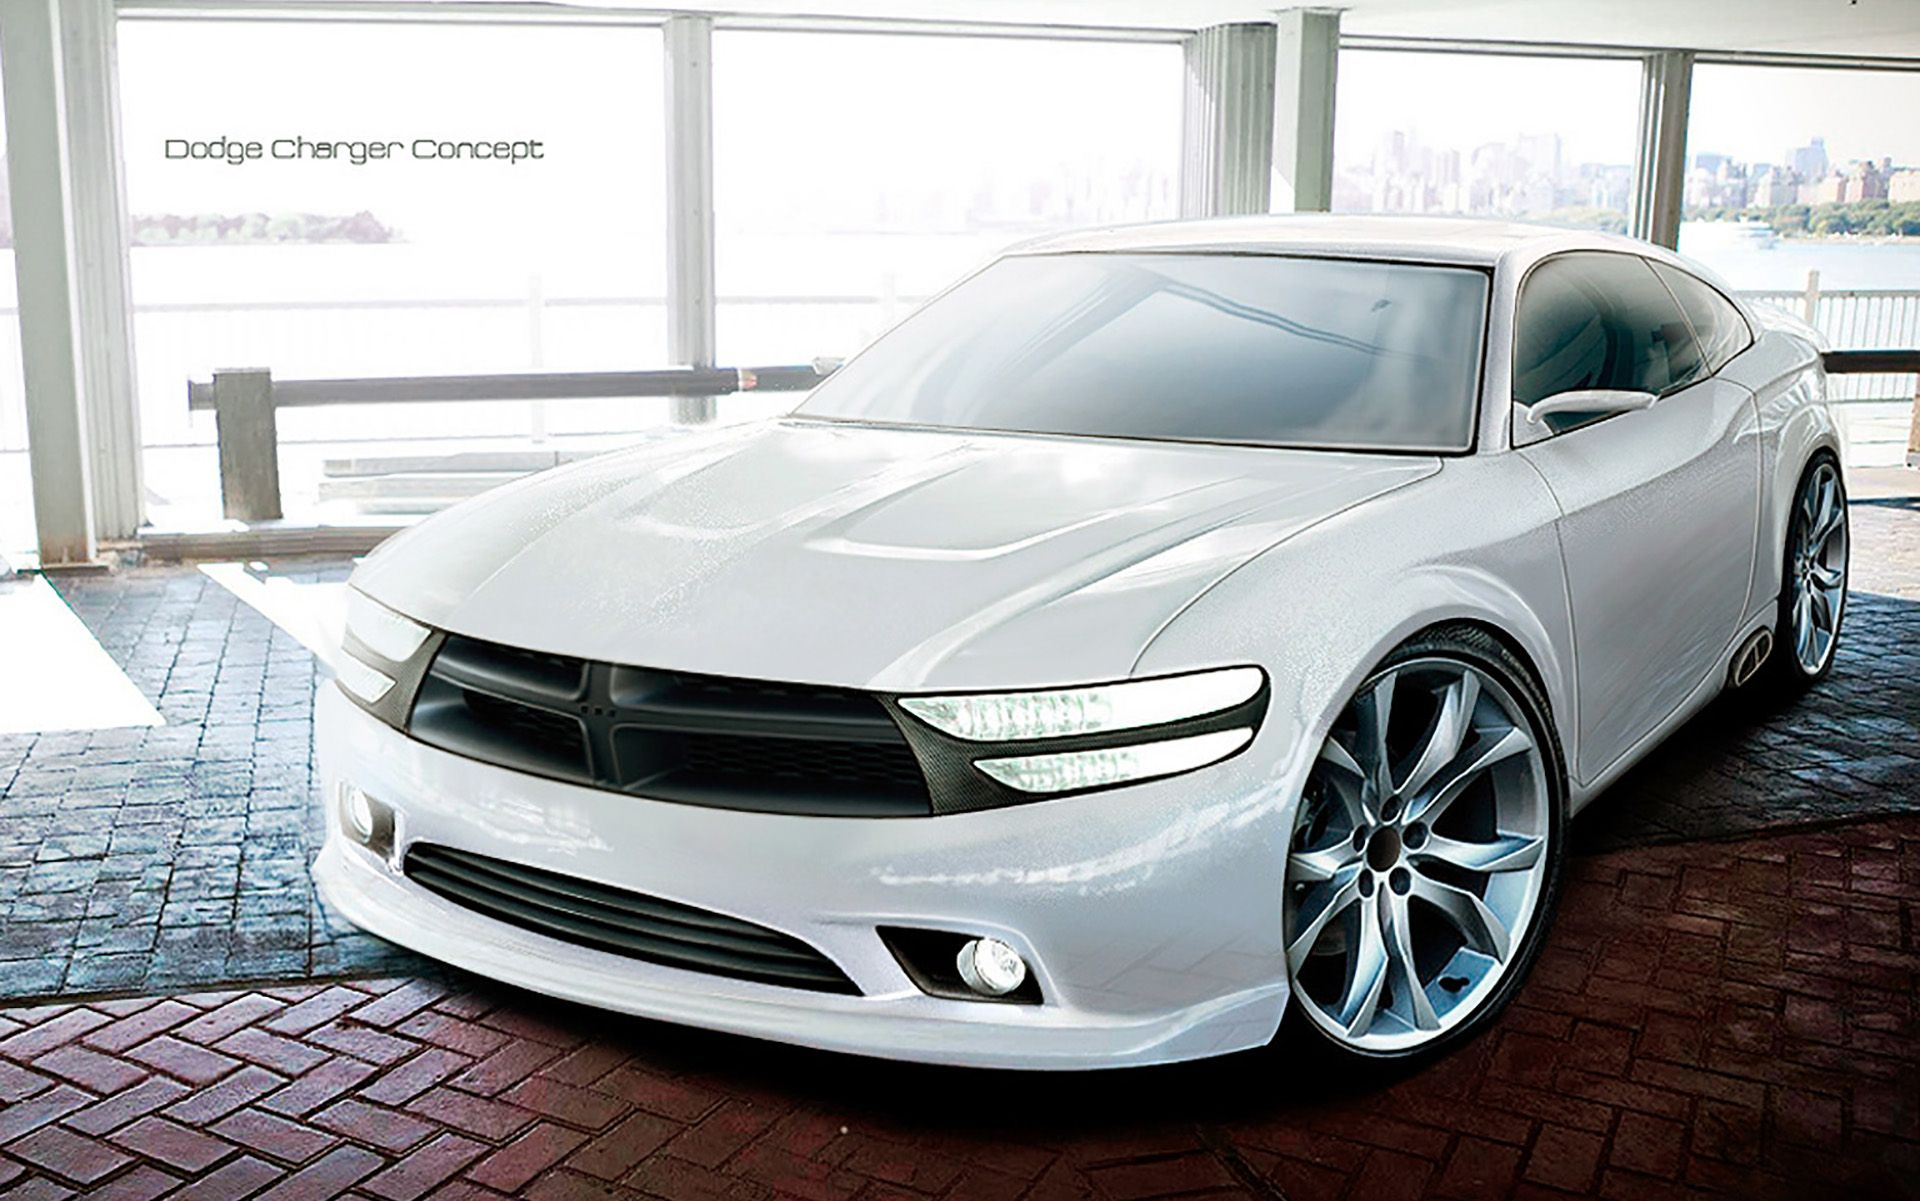 2015 white dodge charger concept car - White Dodge Charger